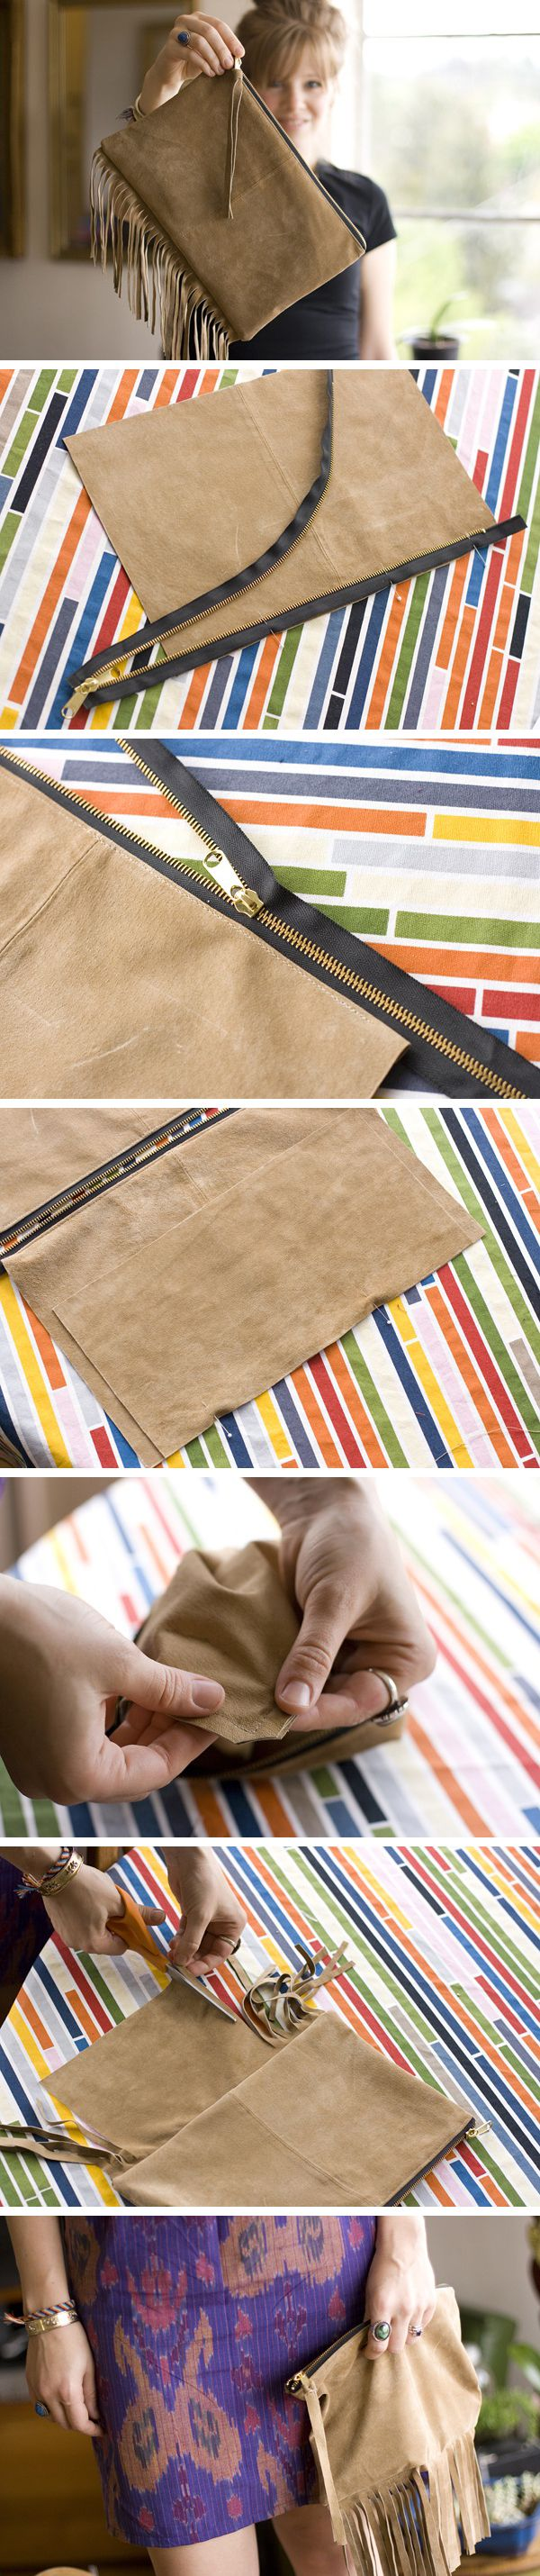 simple and easy clutch tutorial, because when its simple, free and stylish, you know you've got something good.